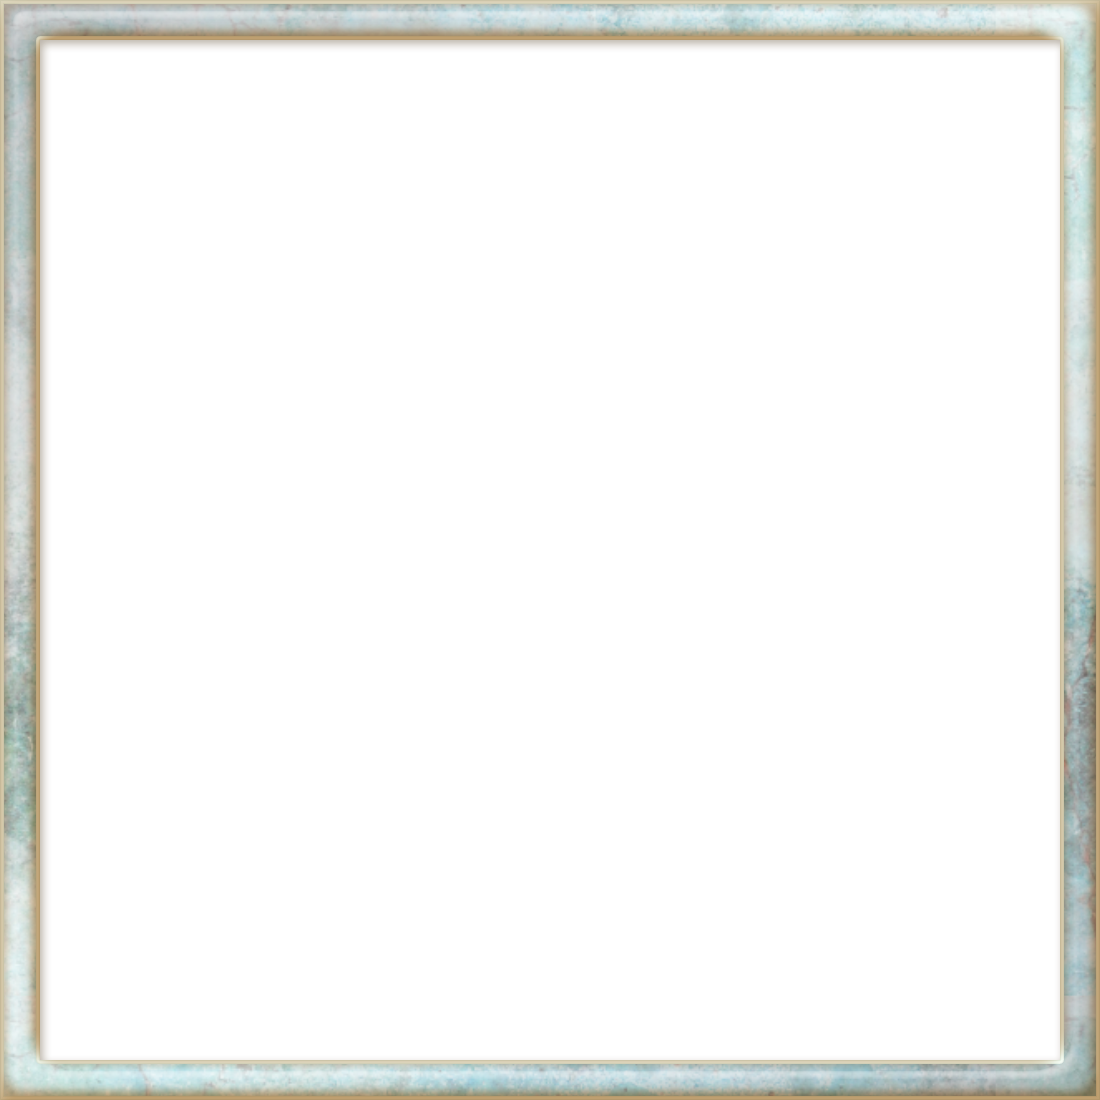 thin frame png